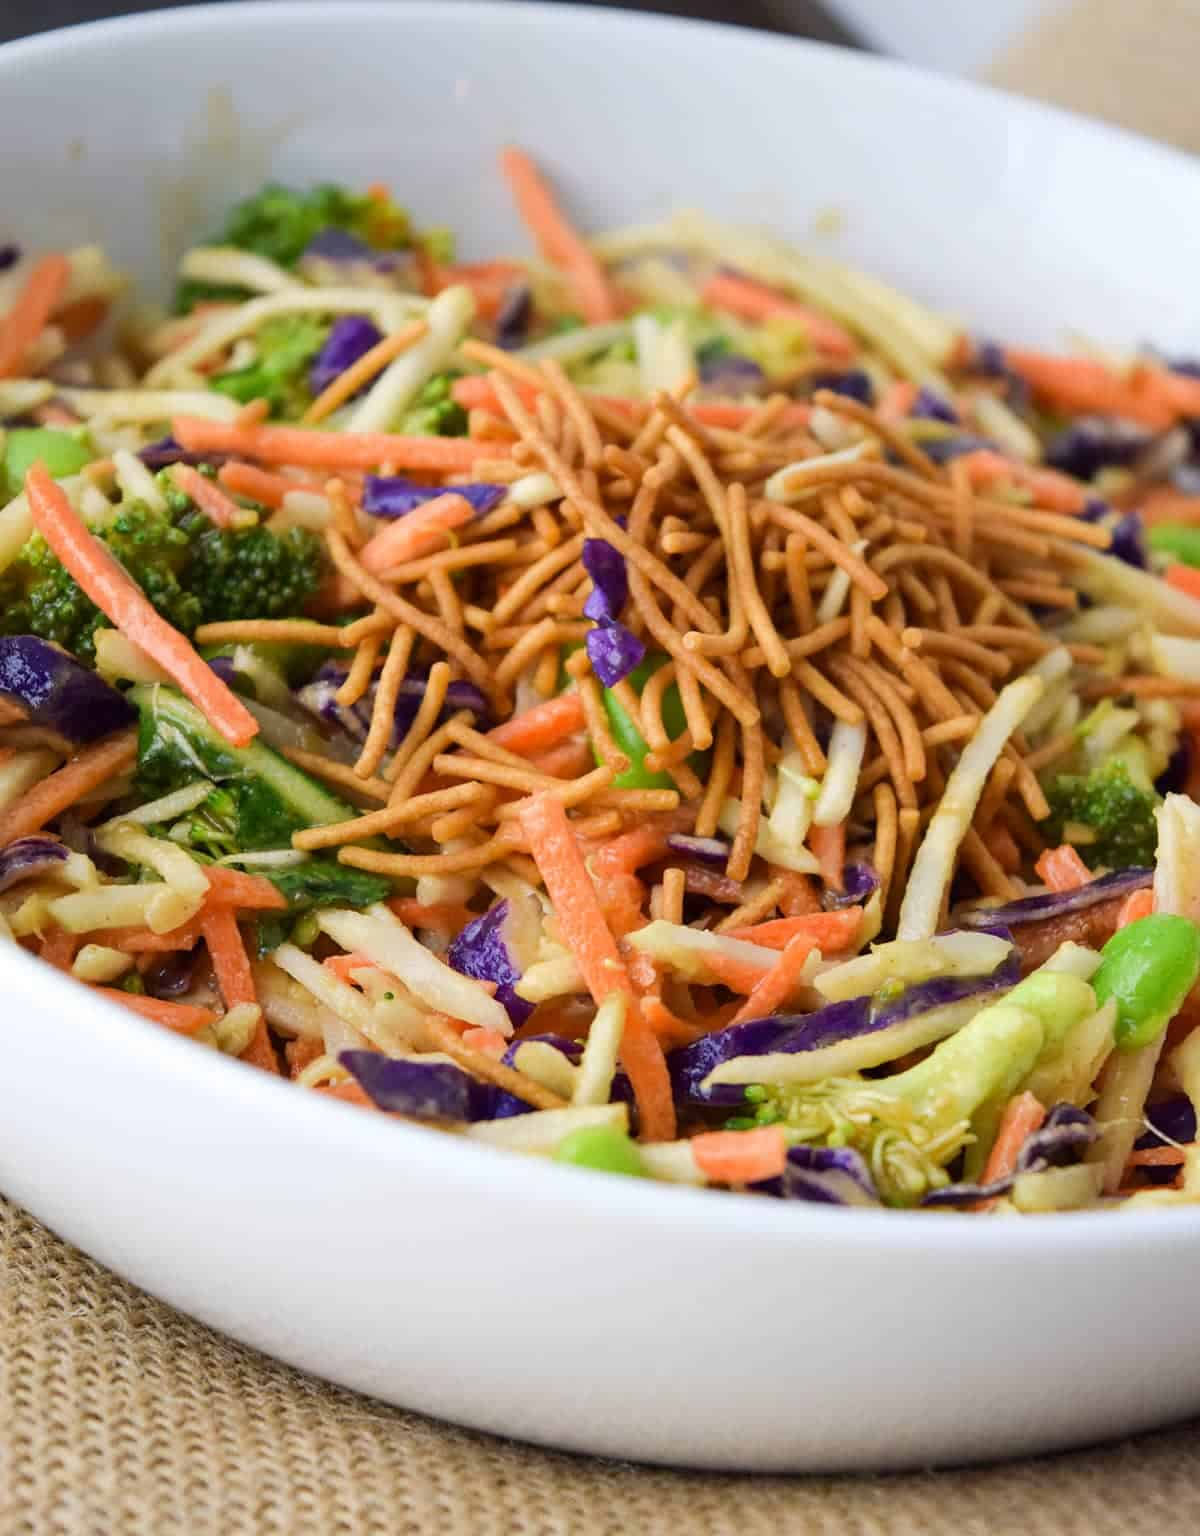 Asian broccoli Slaw with ginger Peanut Dressing topped with crispy asian noodles in white bowl on top of burlap place mat.